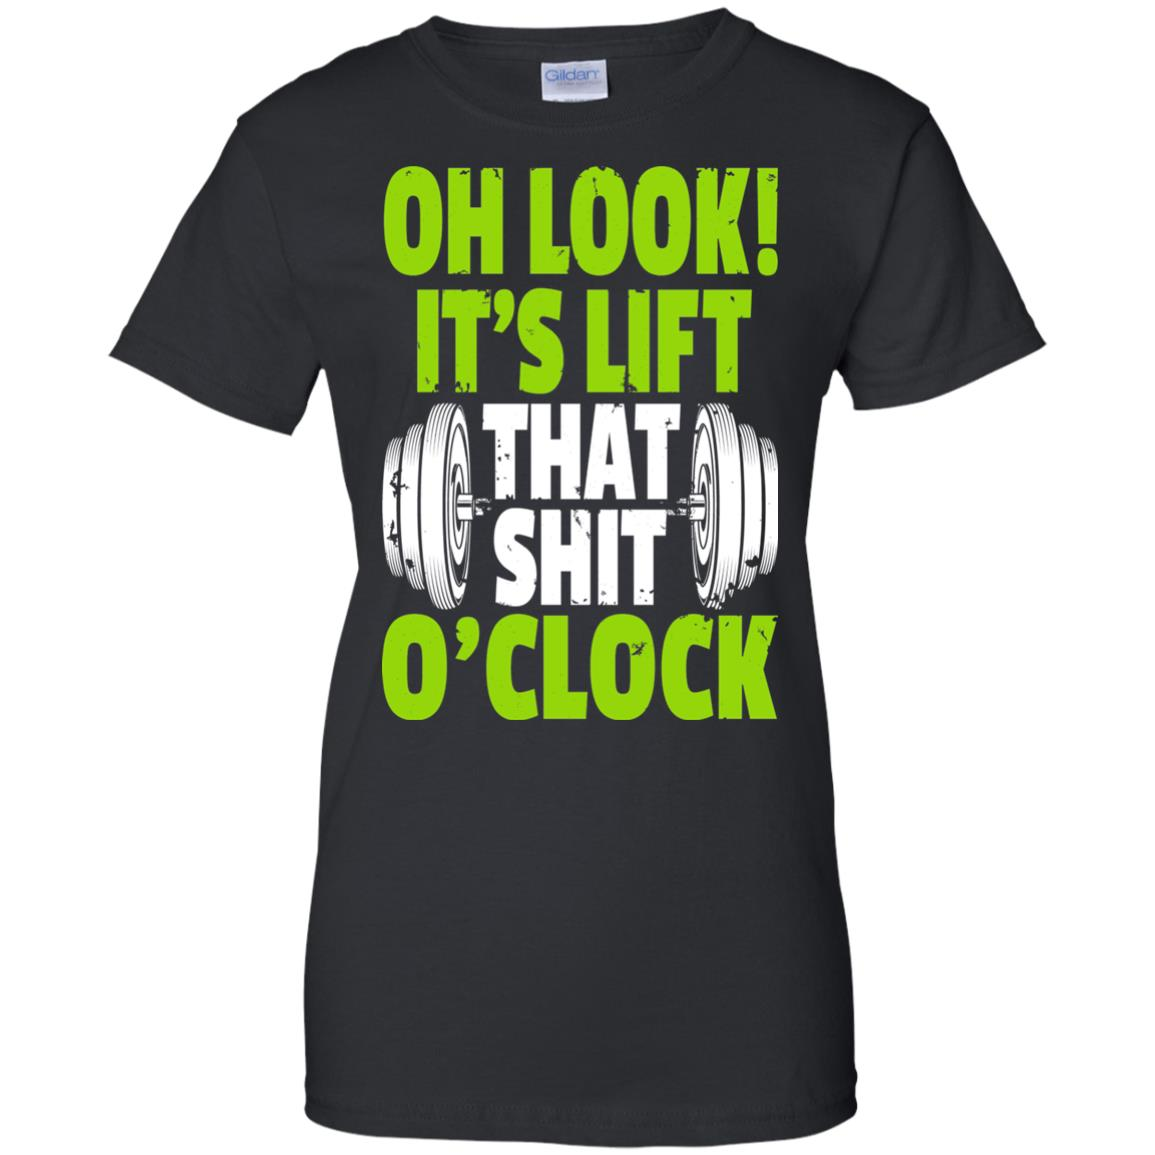 Lift O' Clock - Apparel